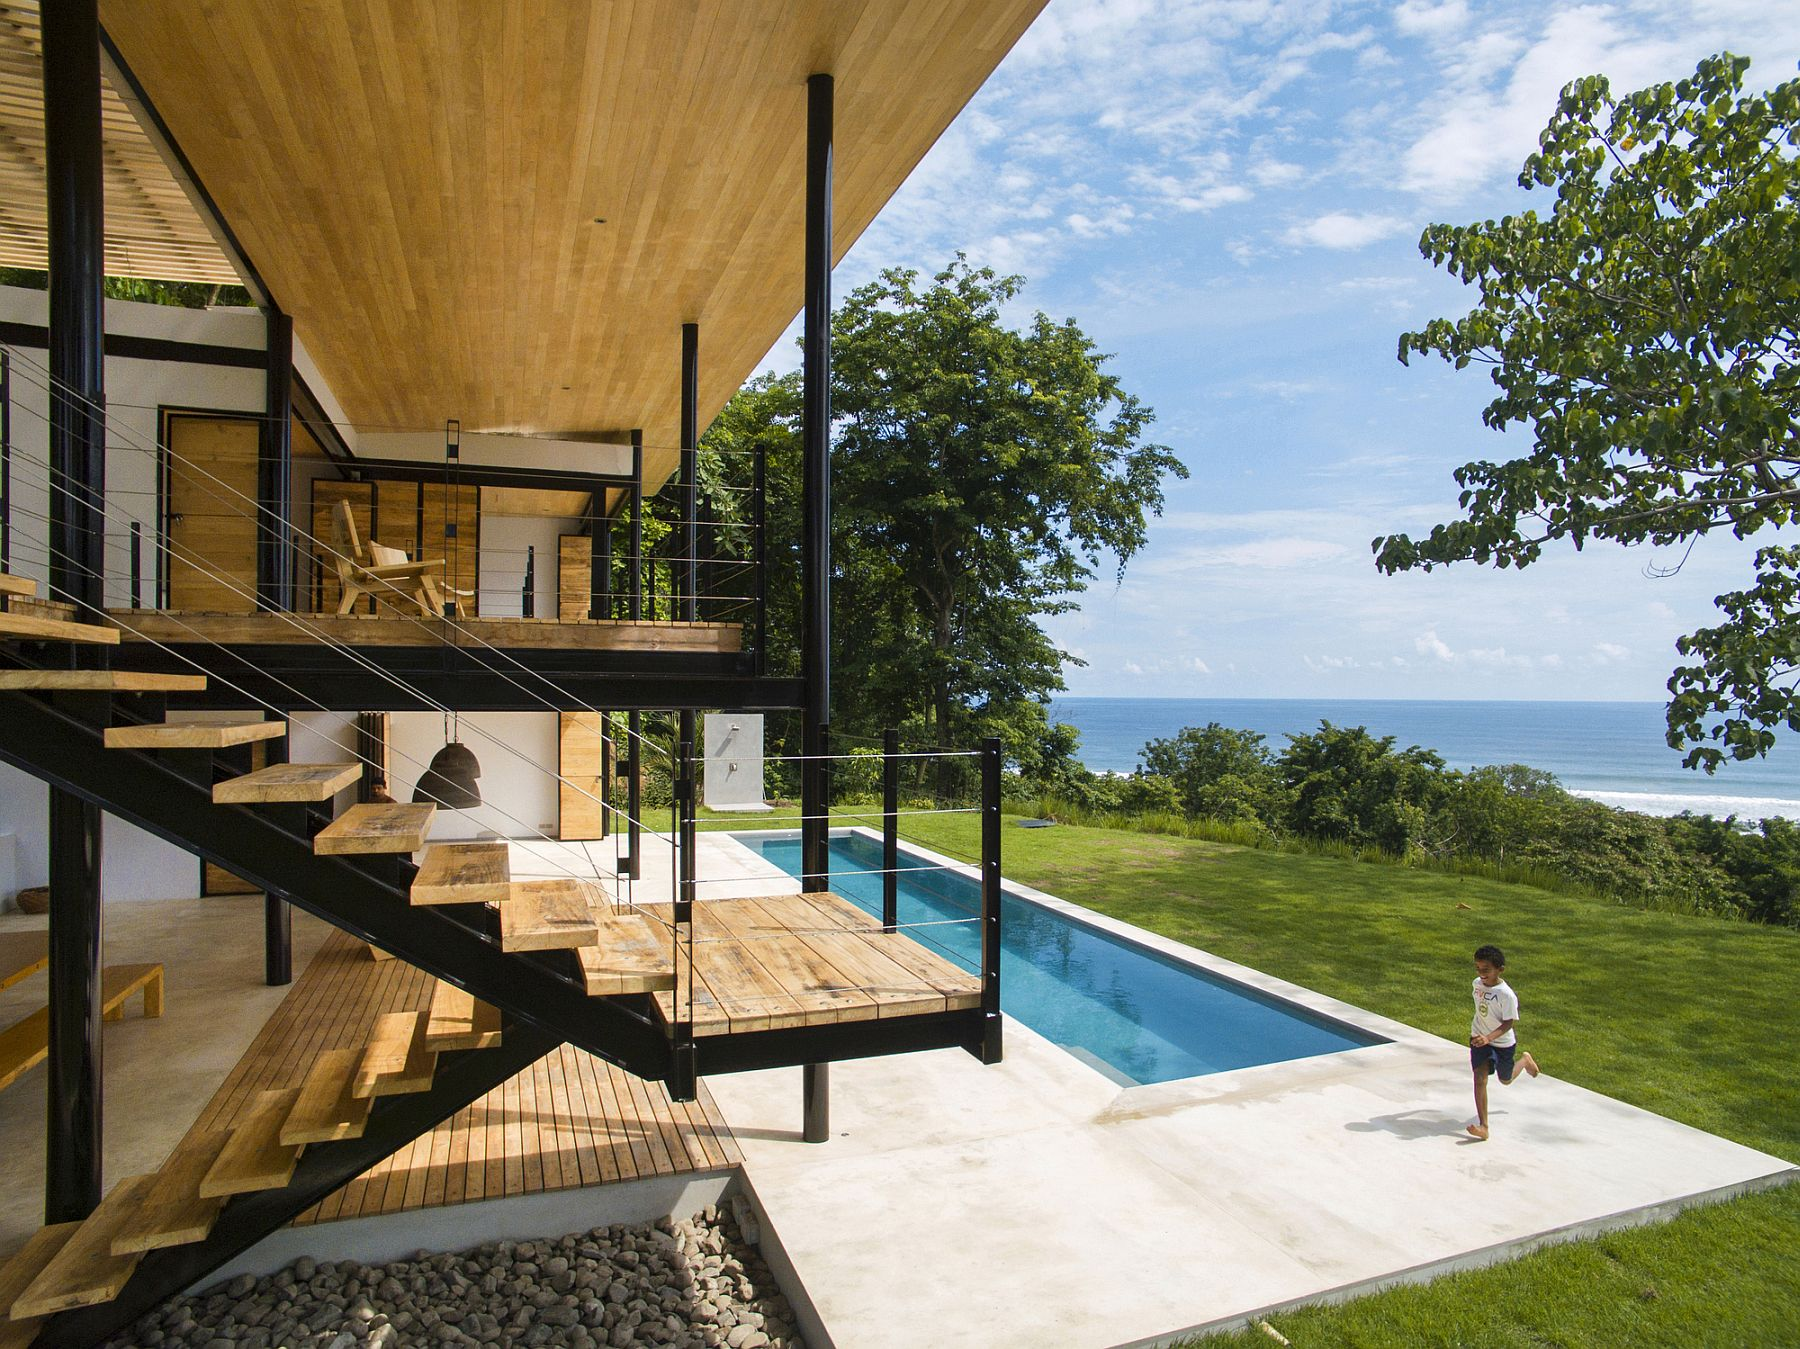 Contemporary family home in Costa Rica with ocean views